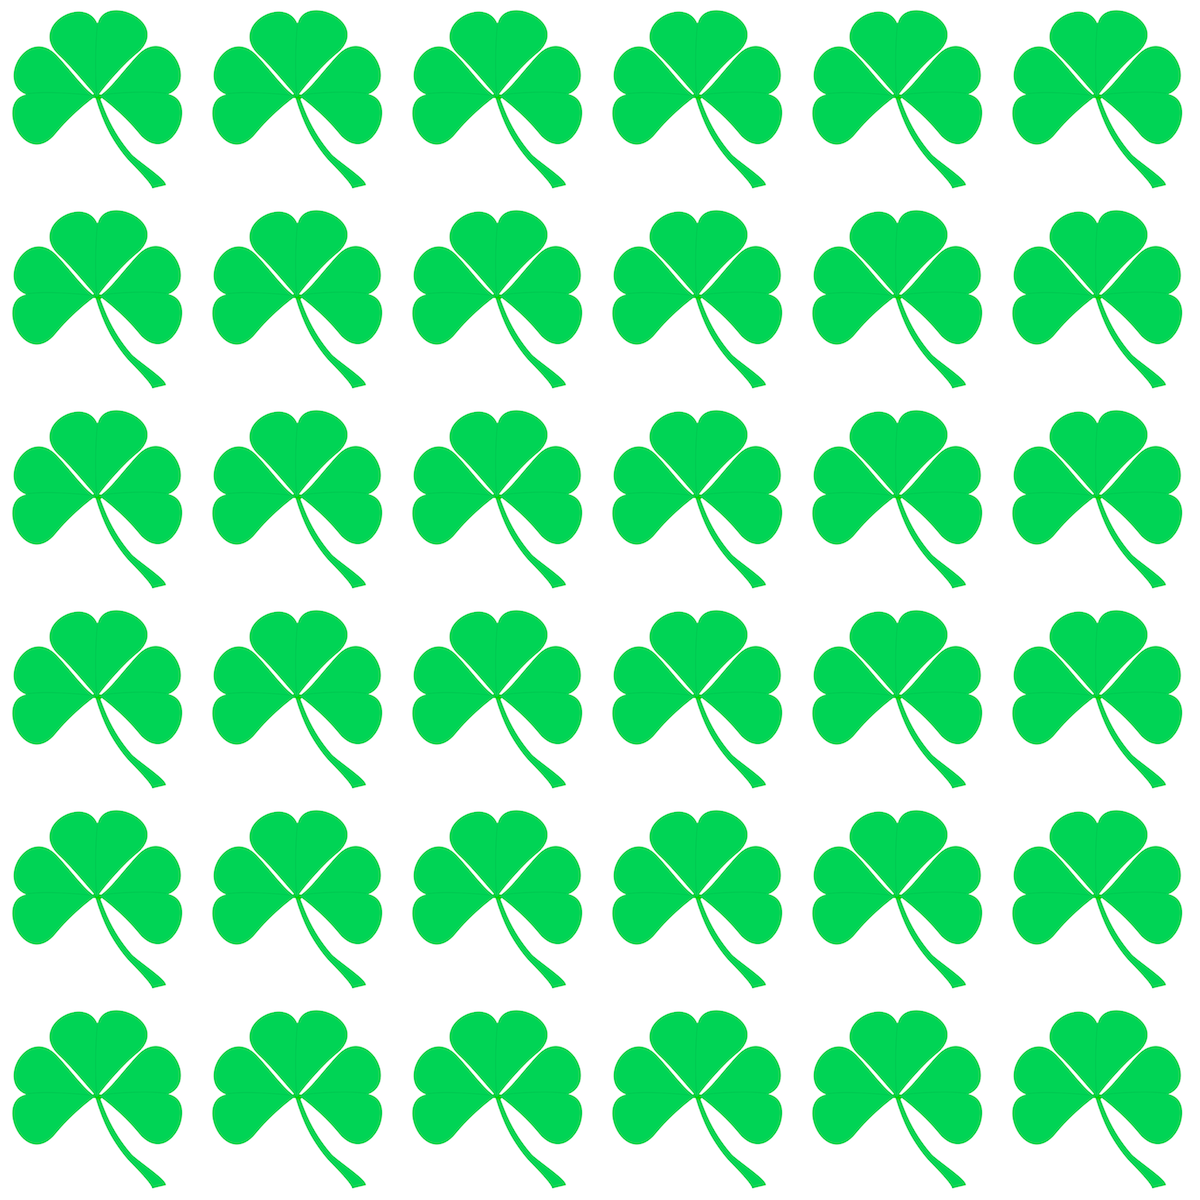 Free digital shamrock scrapbooking paper and templates - Kleeblatt ...